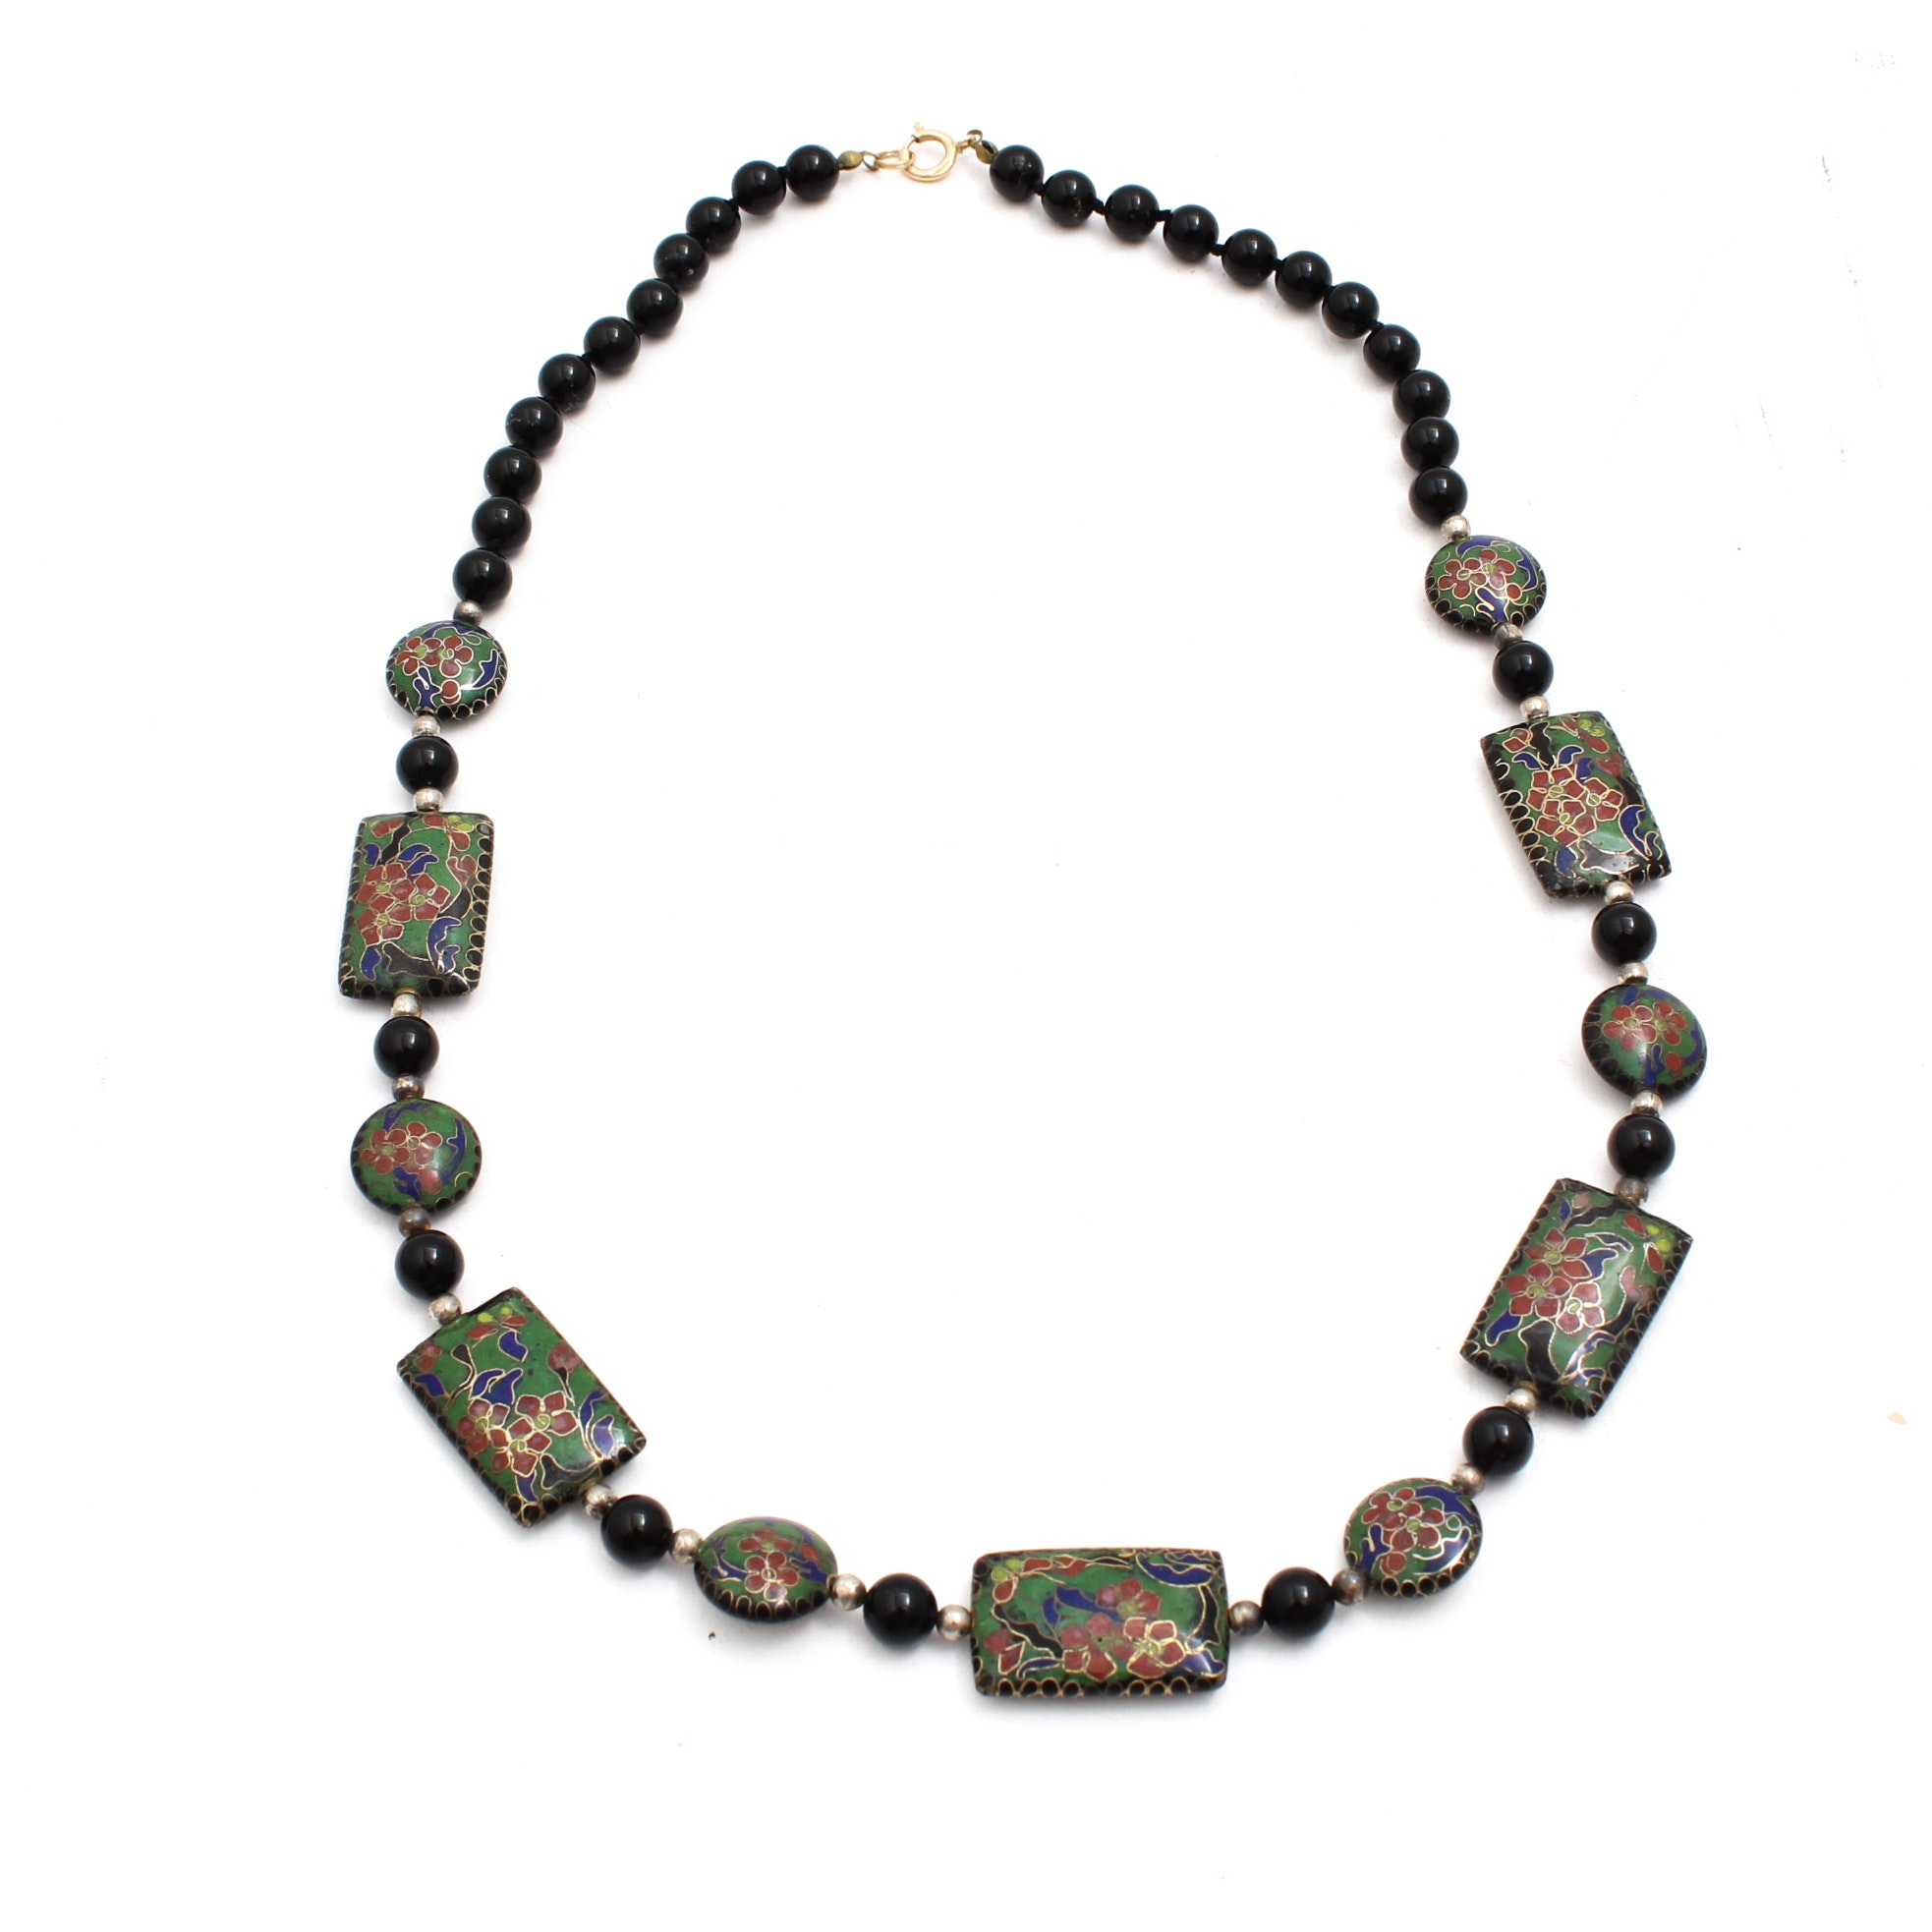 Black Onyx and Cloisonne Bead Necklace with Gold Filled Clasp